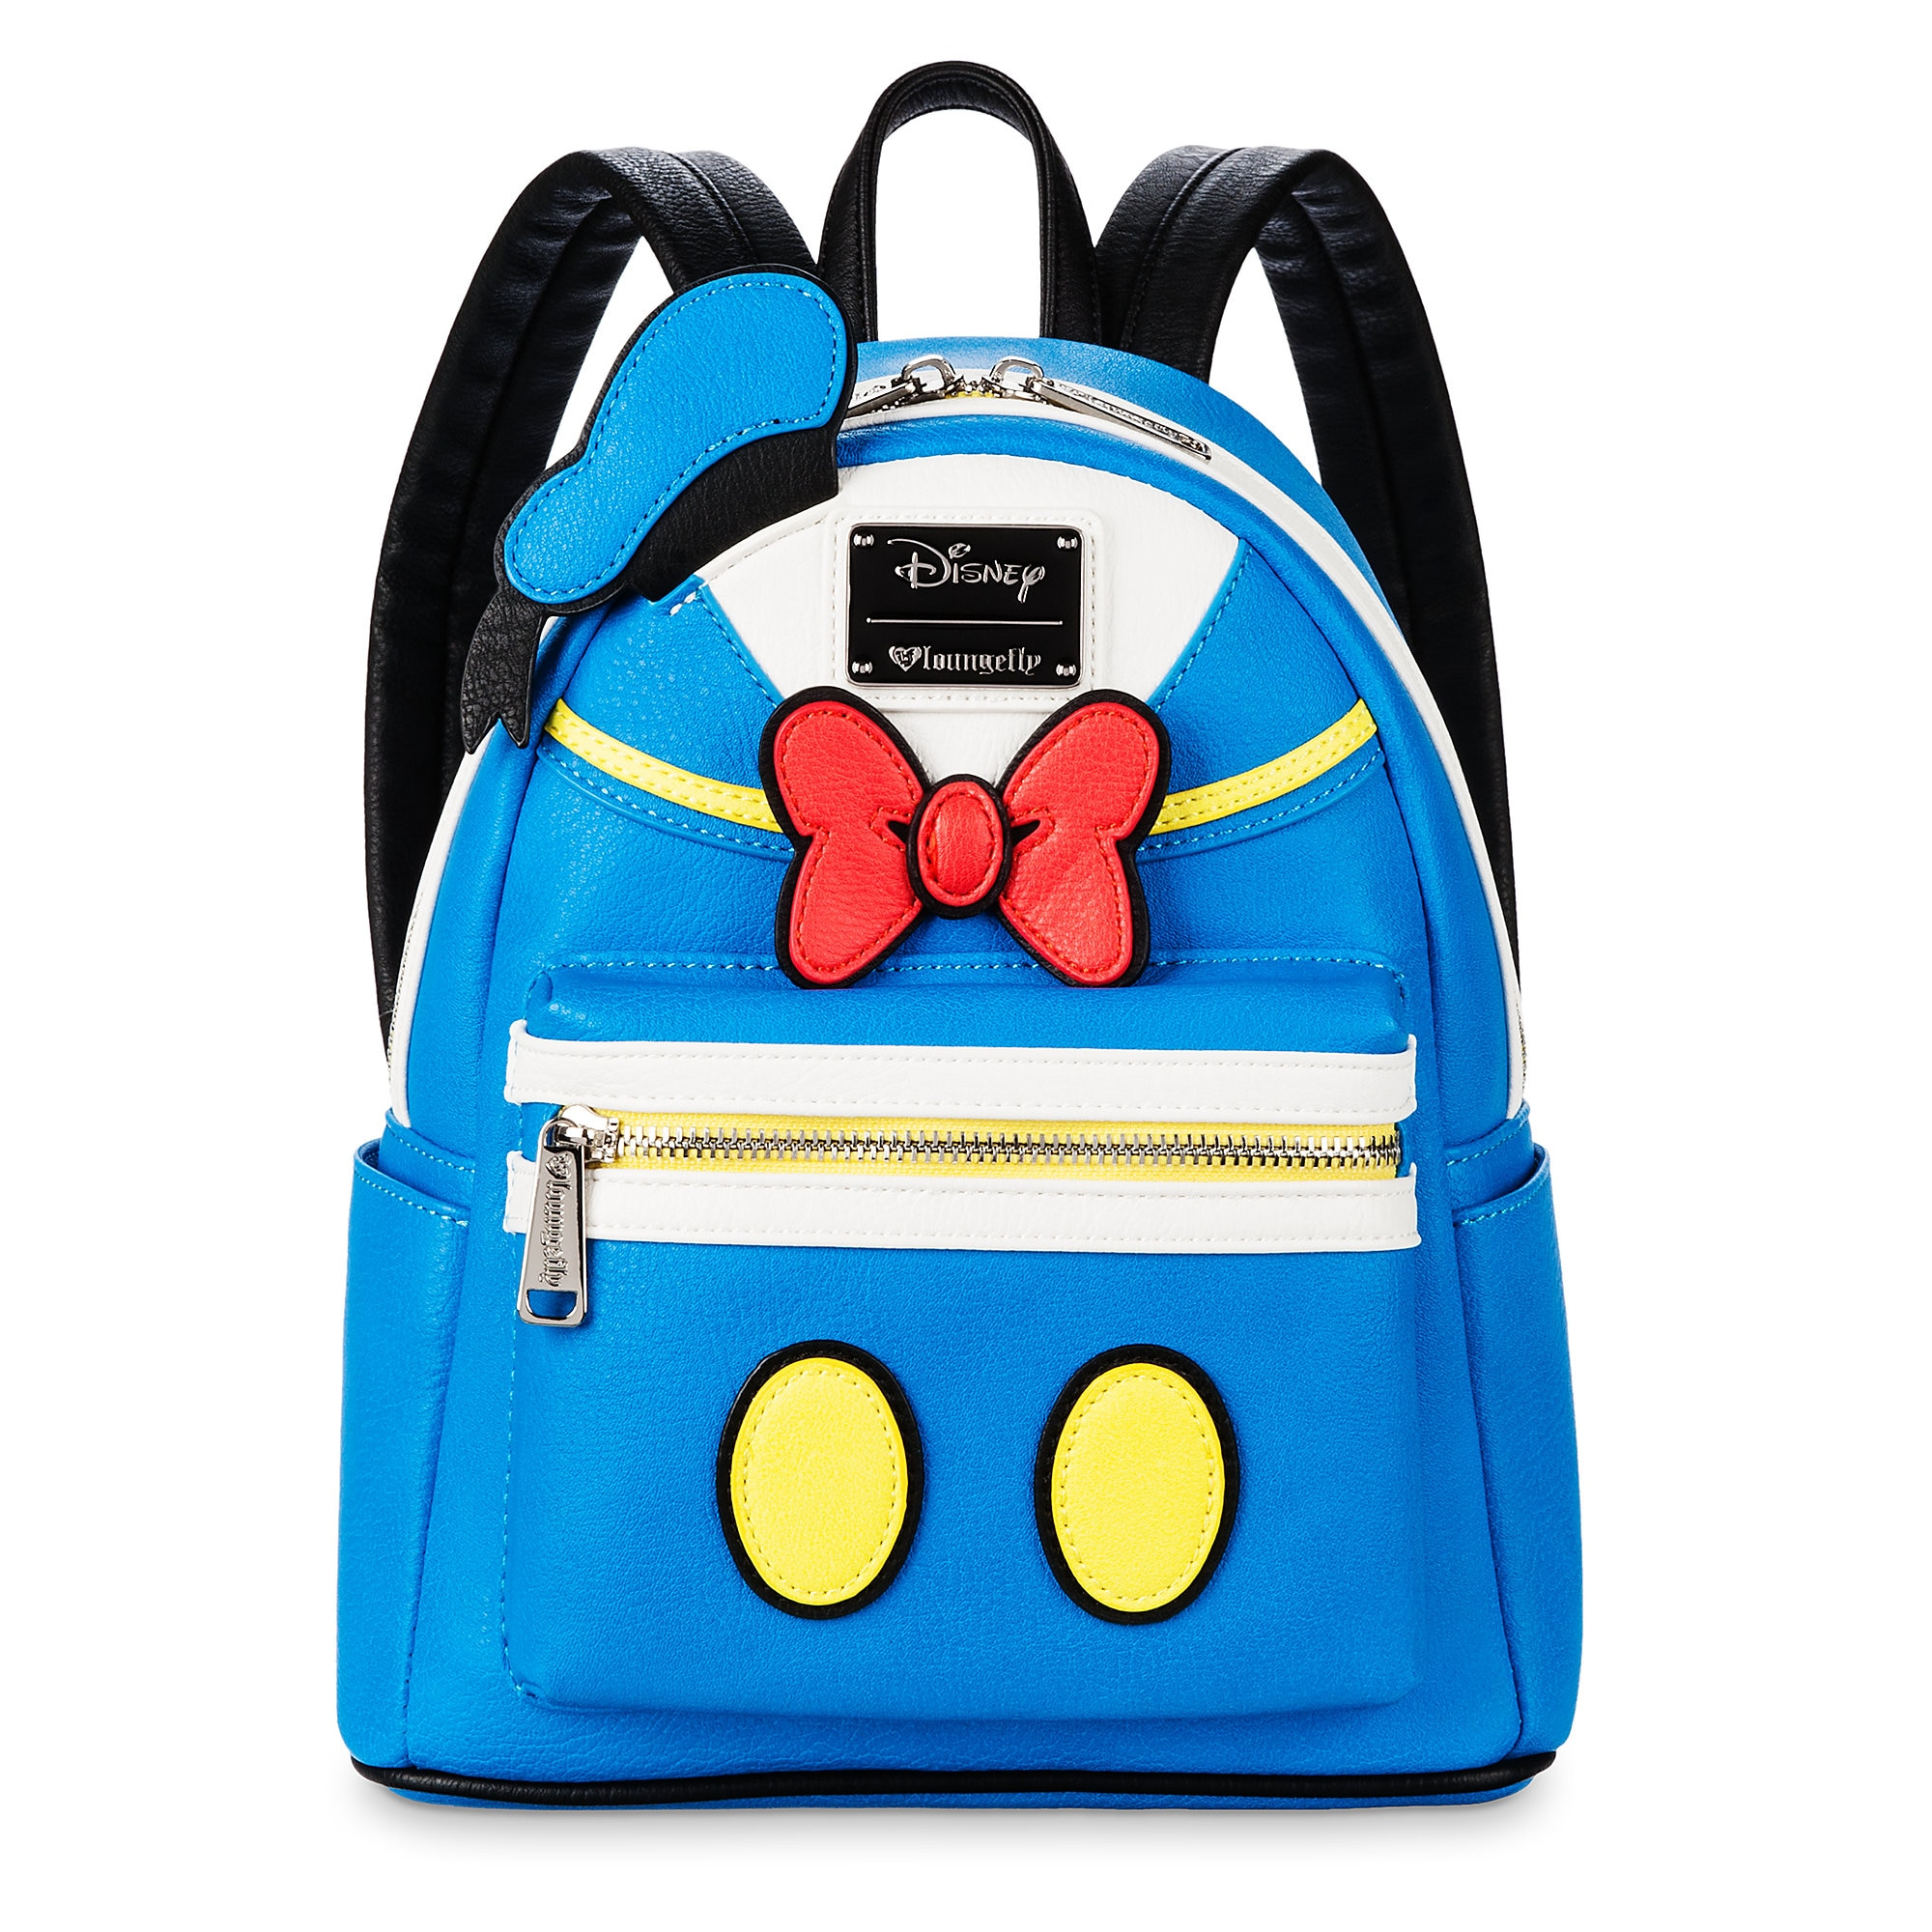 Donald Duck Mini Backpack by Loungefly  shopDisney